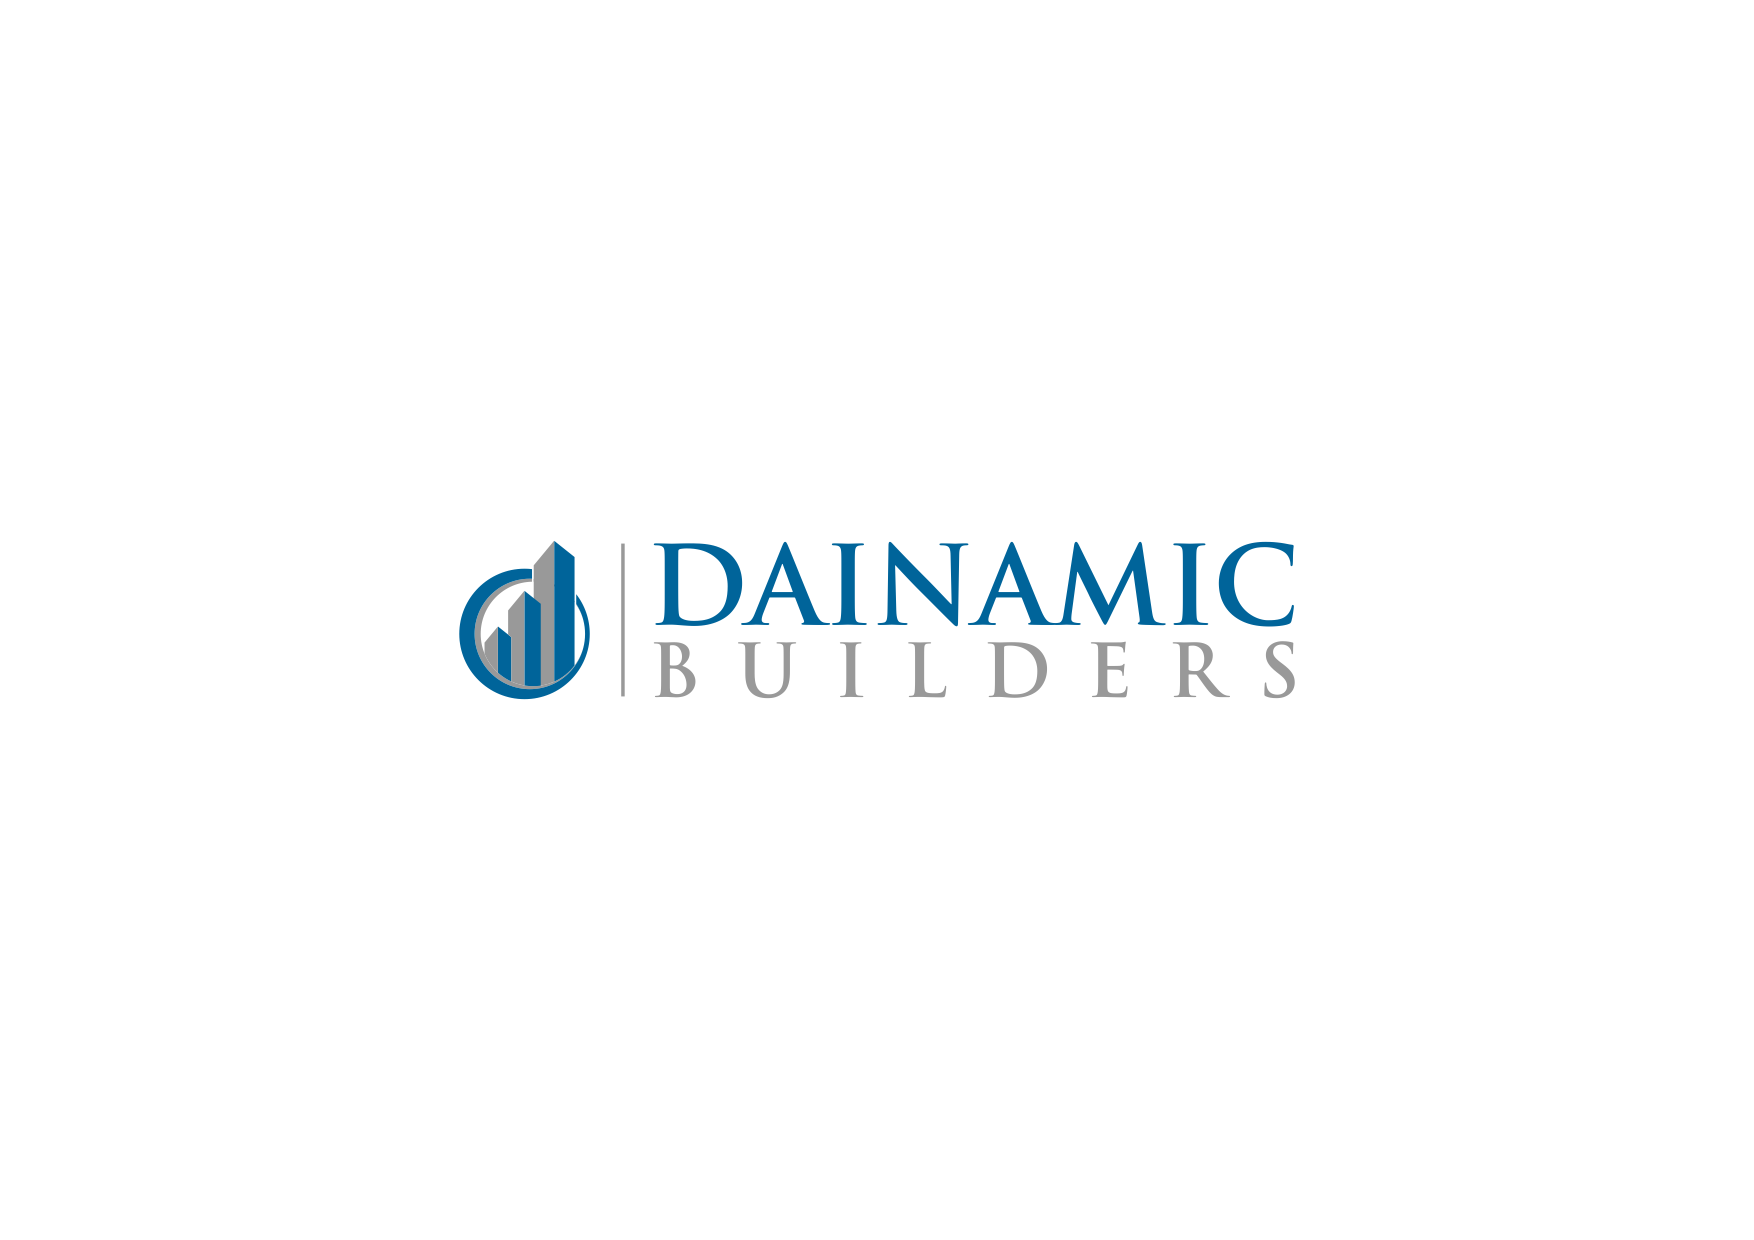 Logo Design Contests New Logo Design For Dainamic Builders